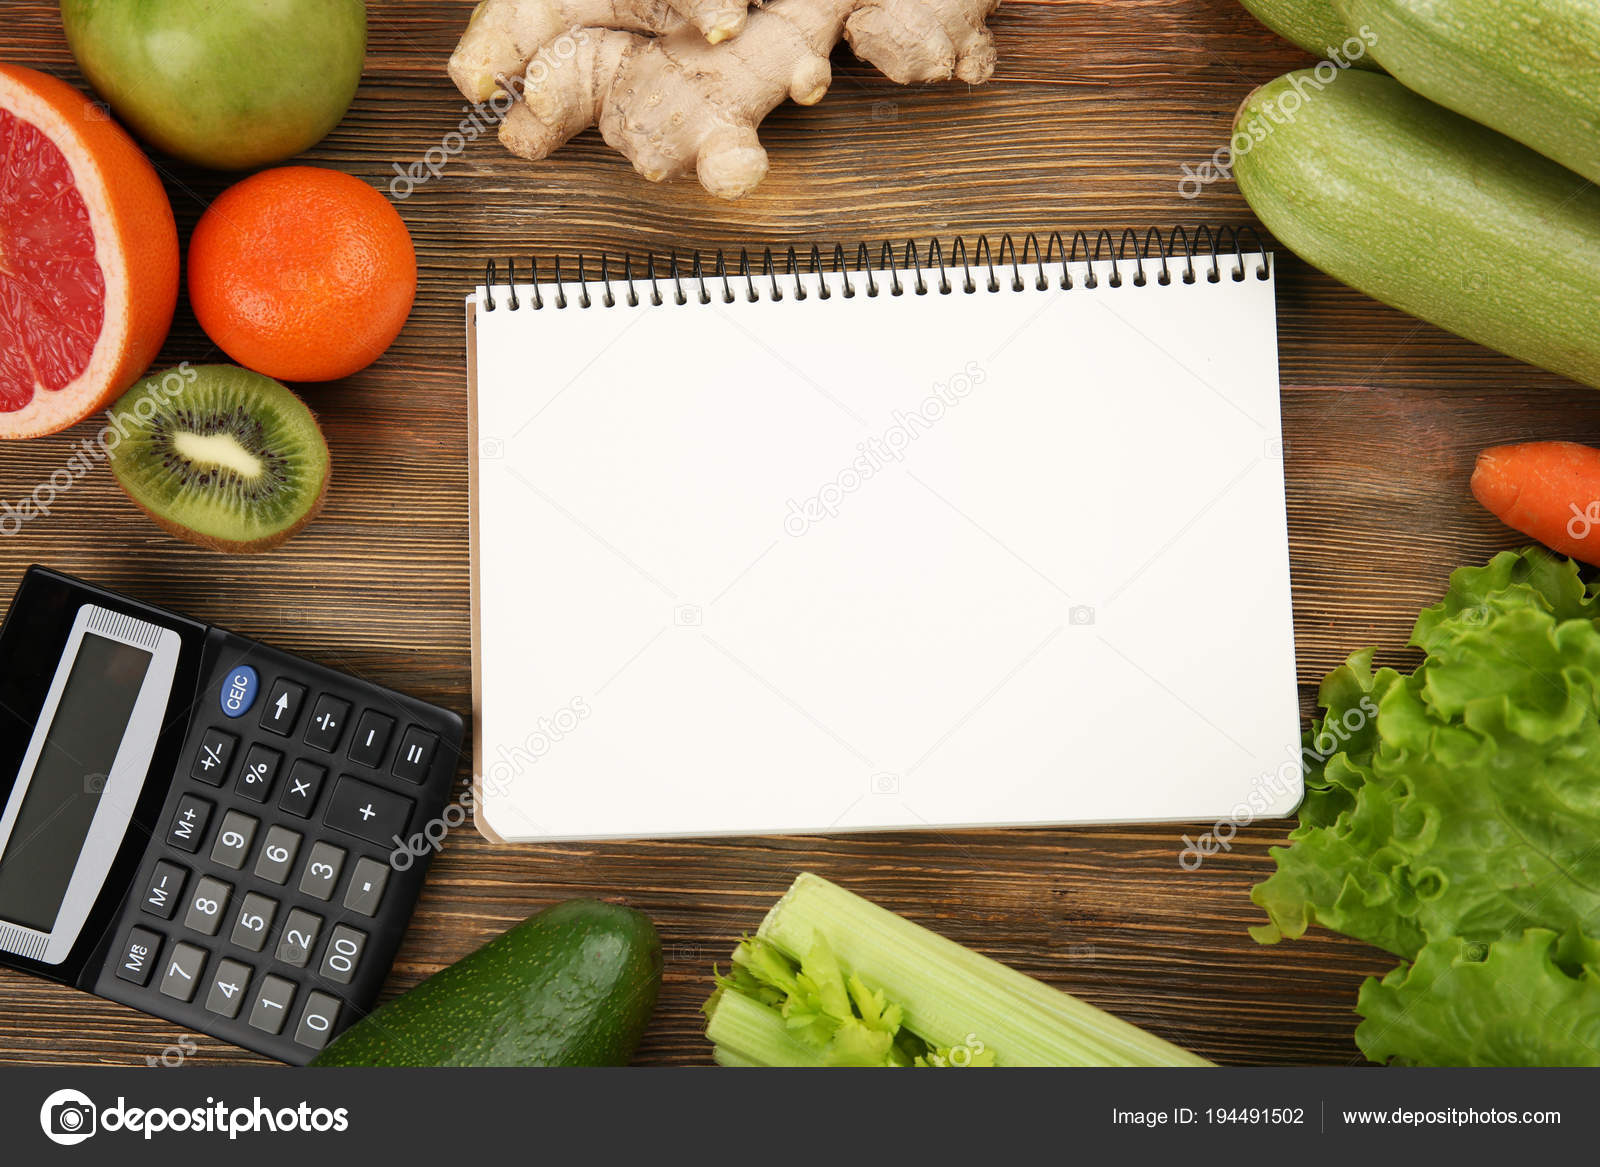 calculator notebook and different groceries stock photo